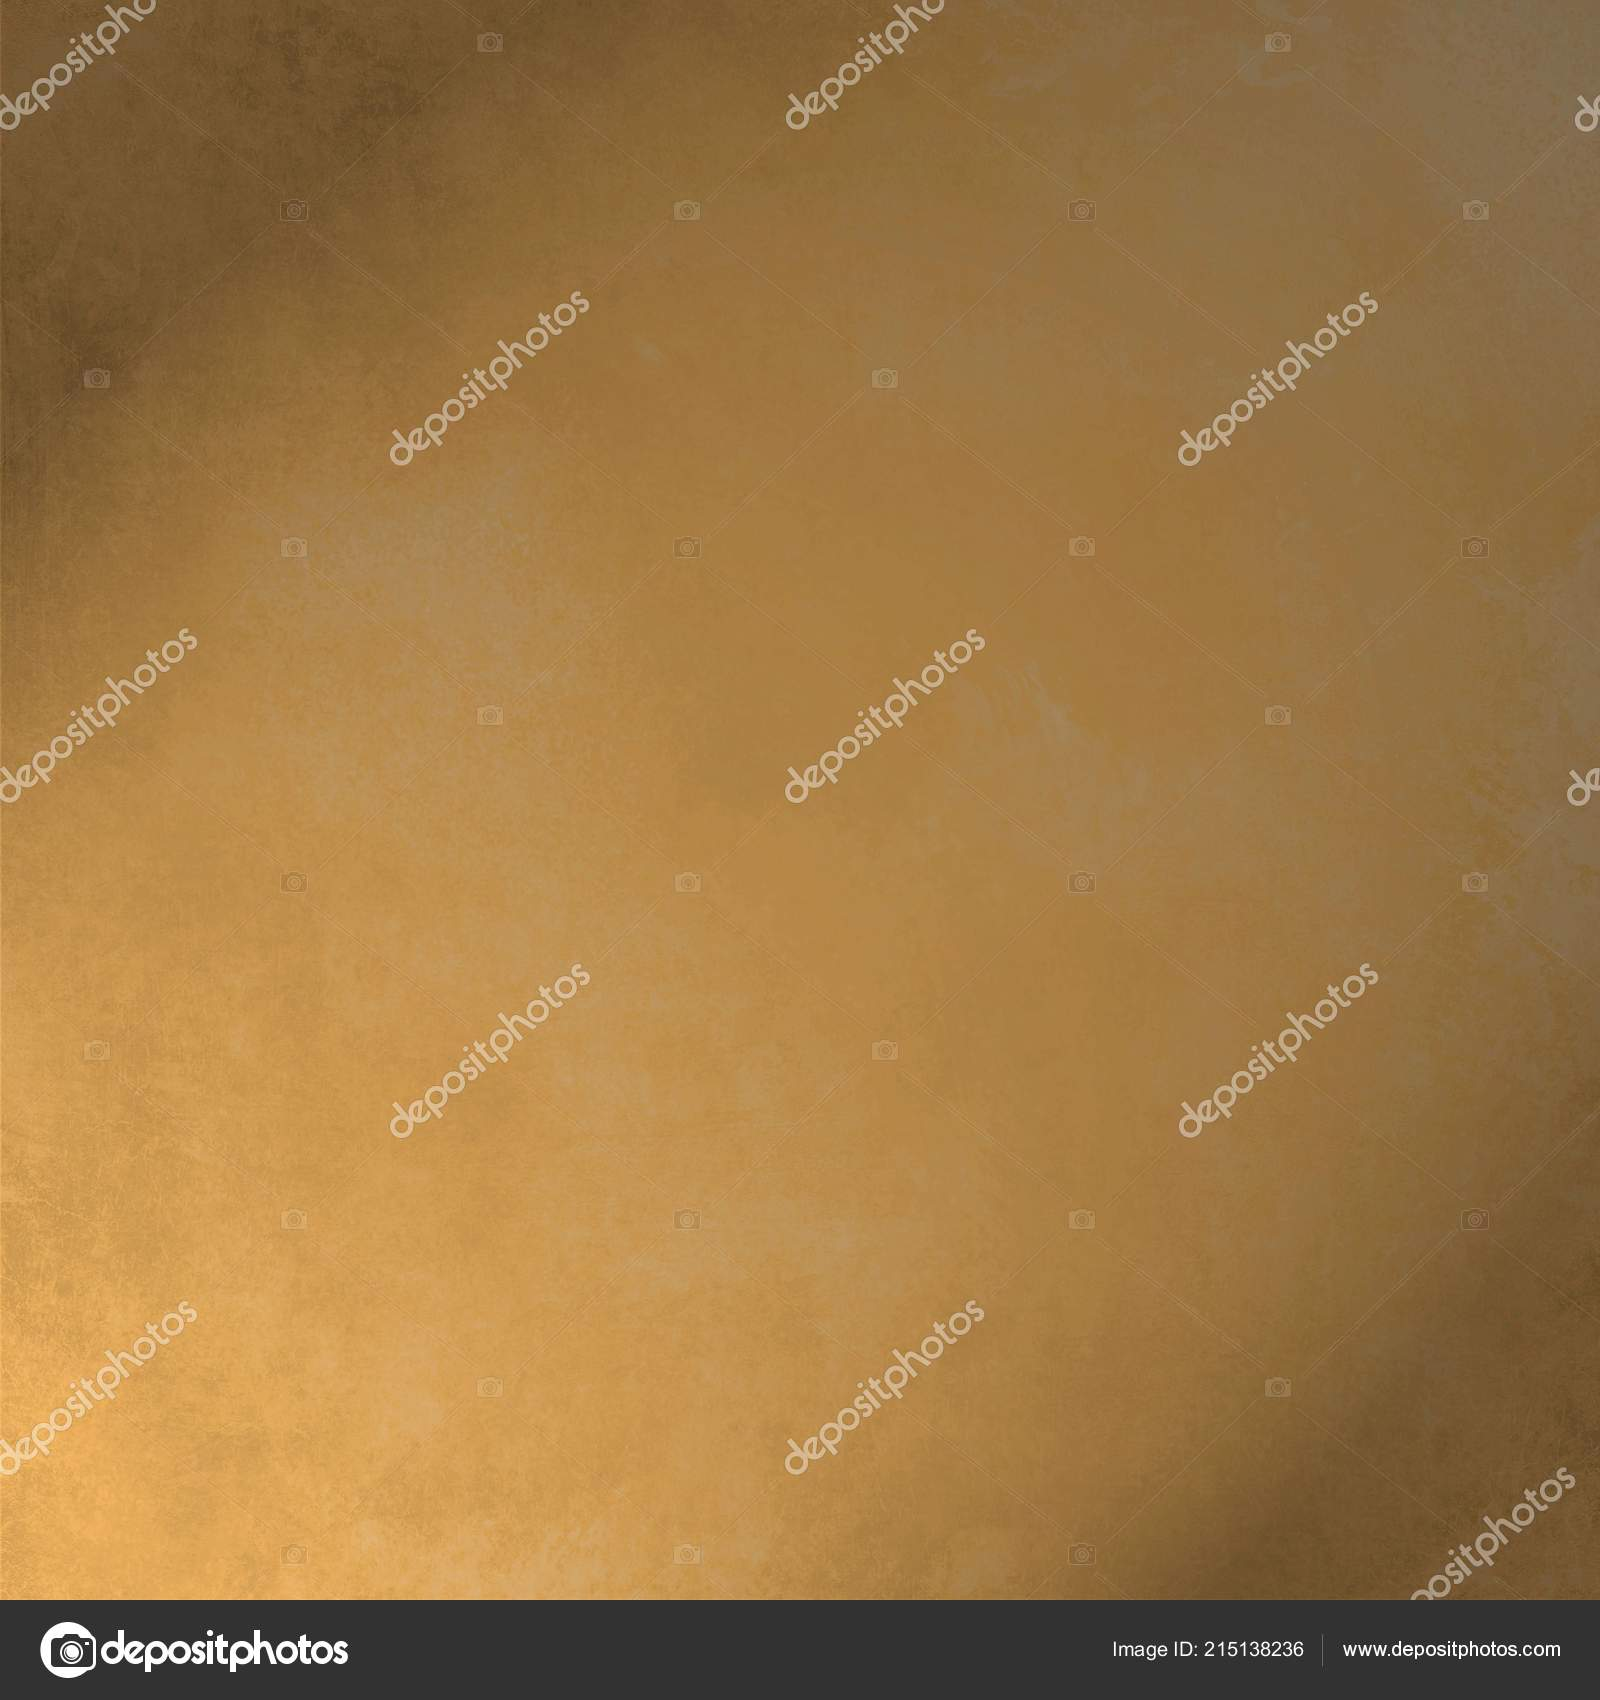 Designed Grunge abstract background